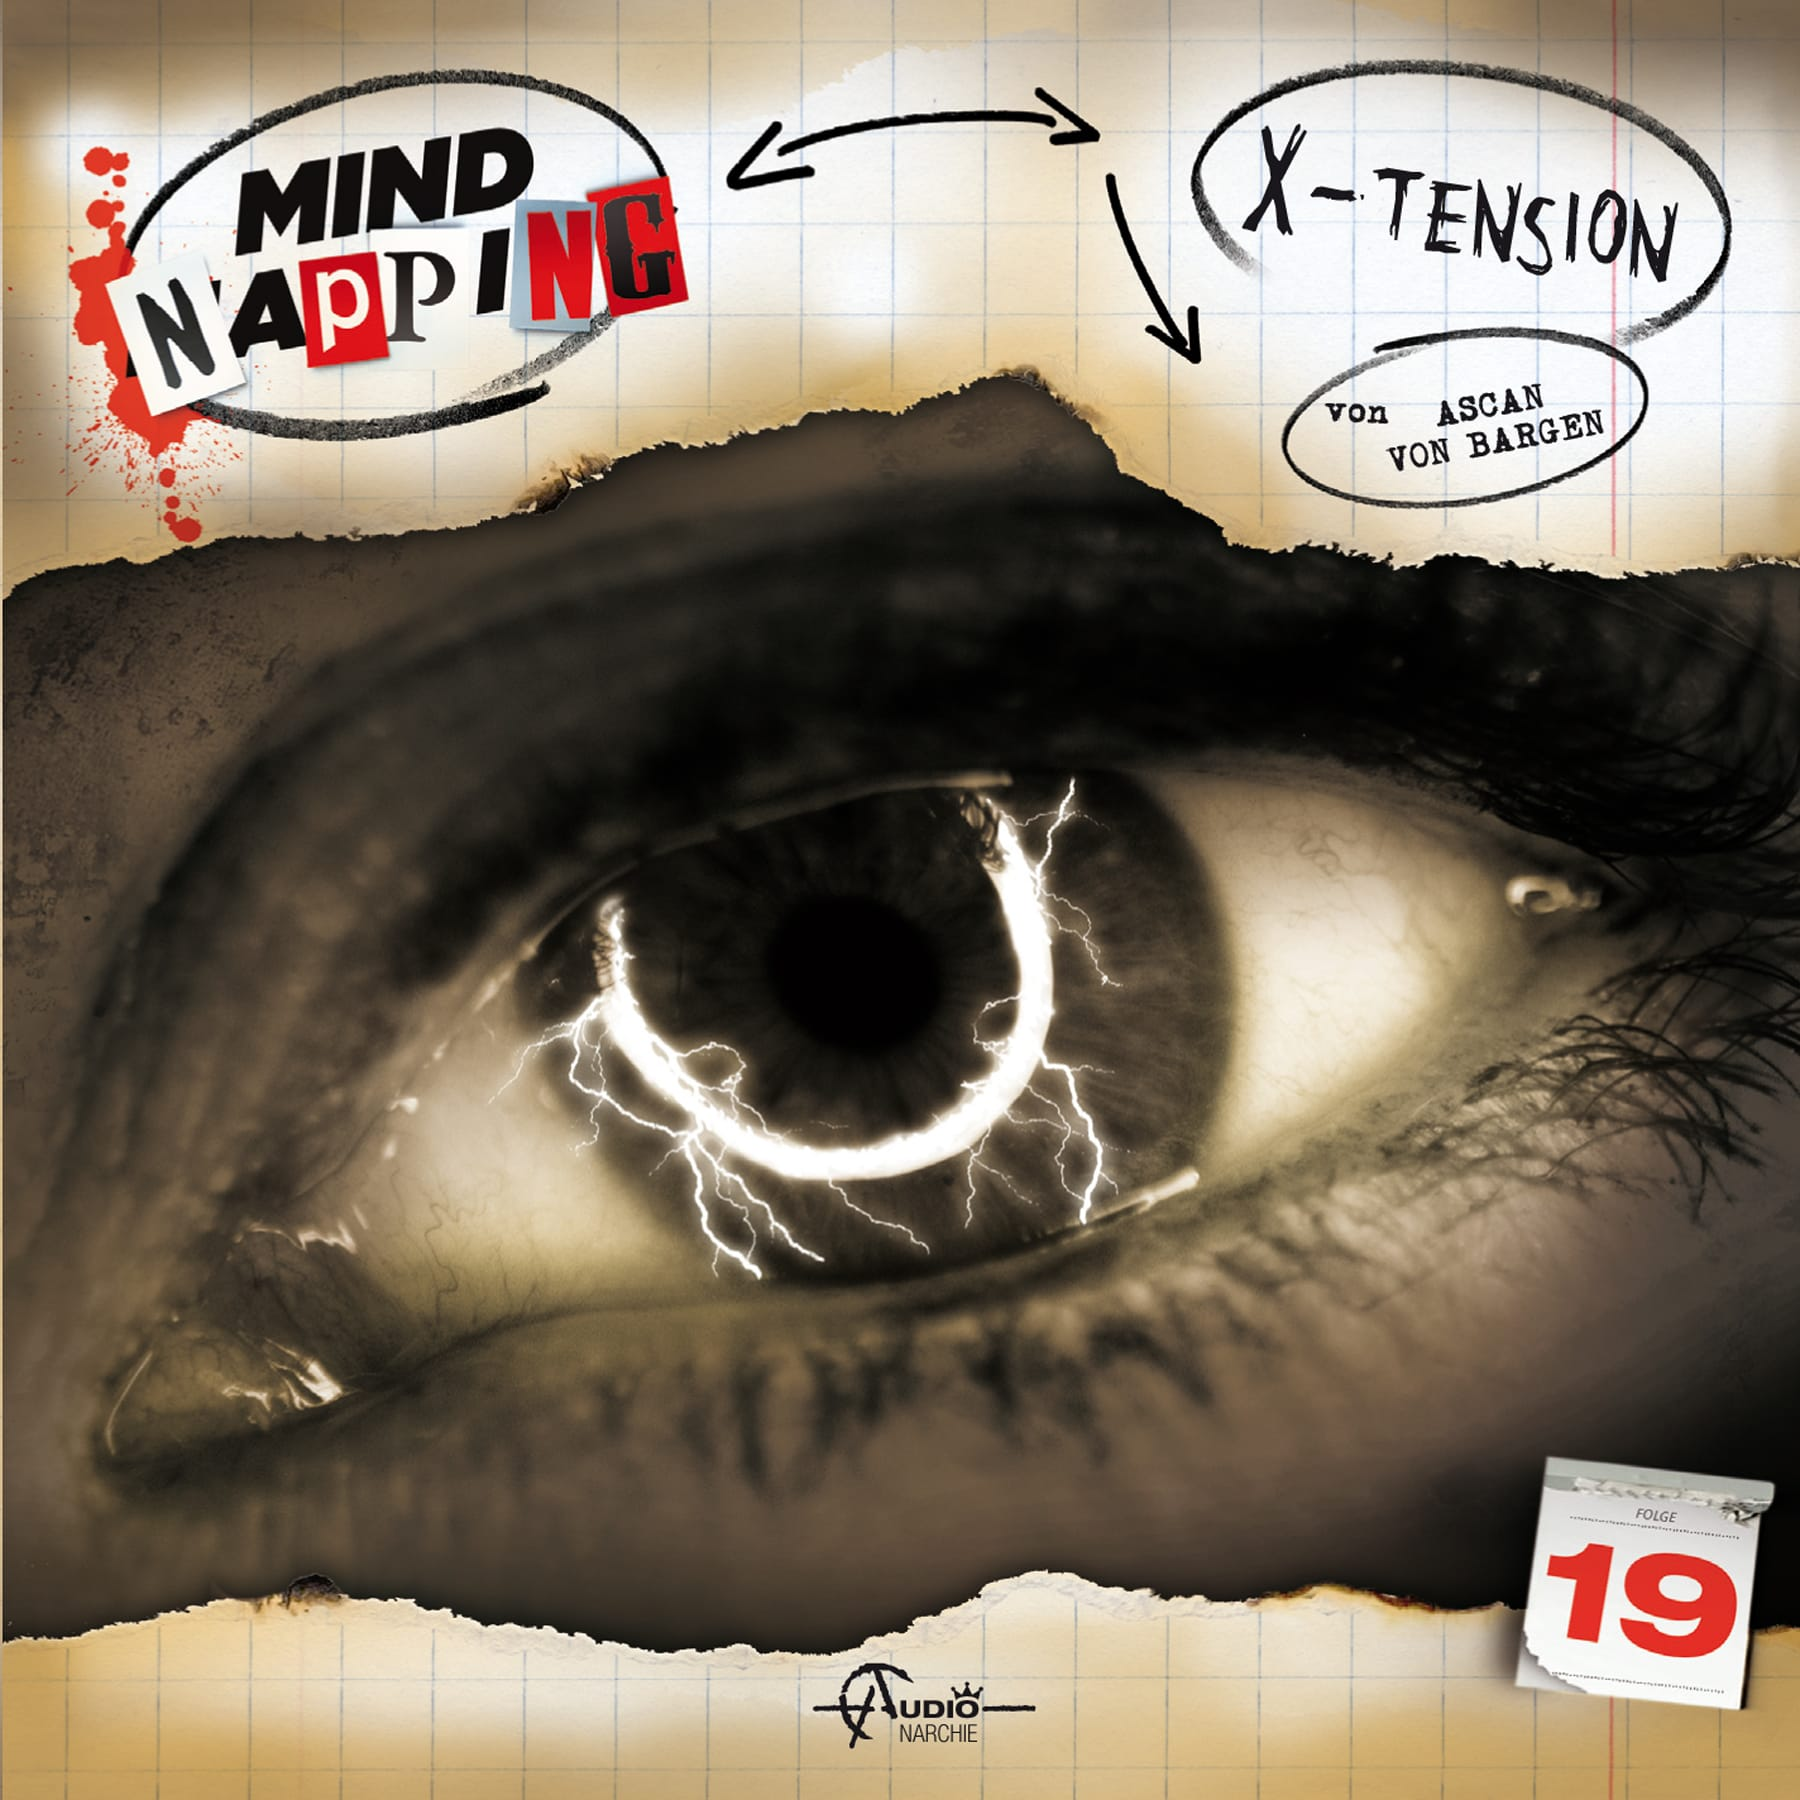 Mindnapping (19) – X-Tension